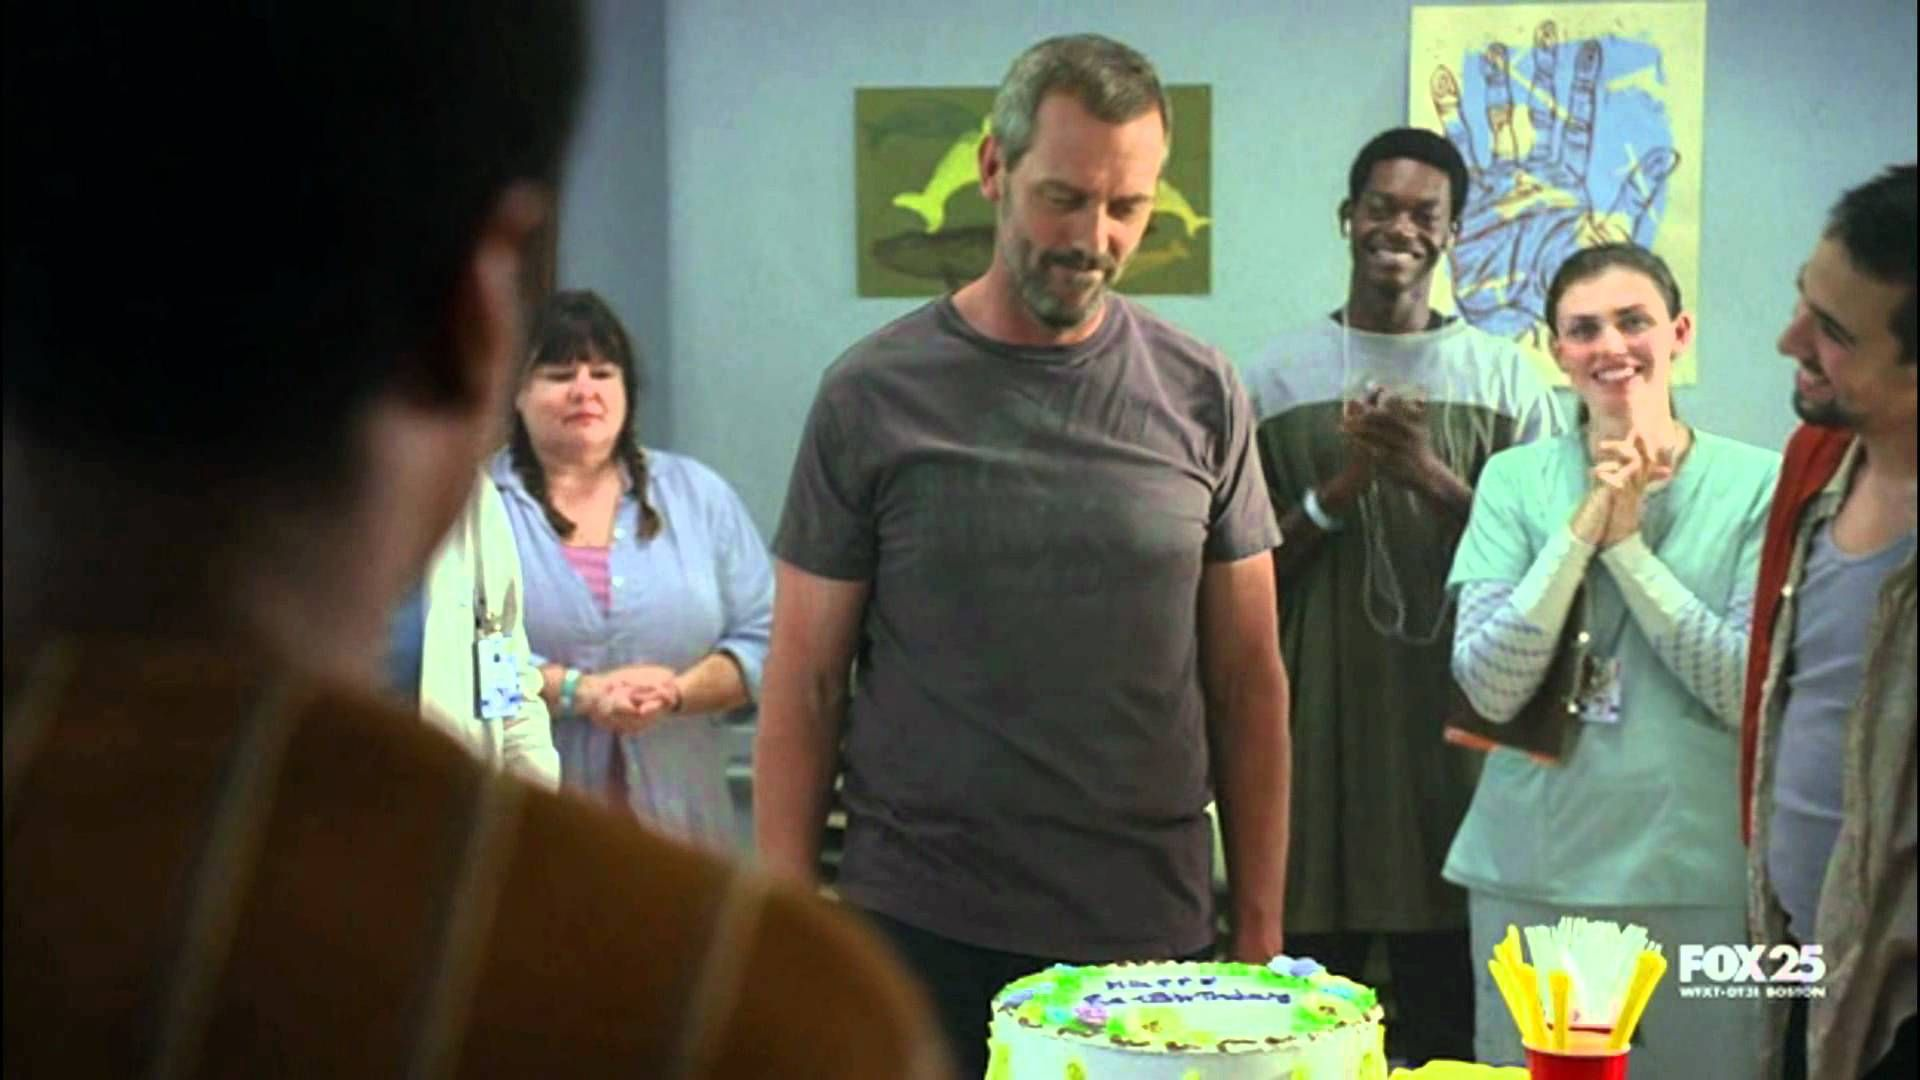 Tv series best scene ever house md face on the cake via youtube also rh pinterest